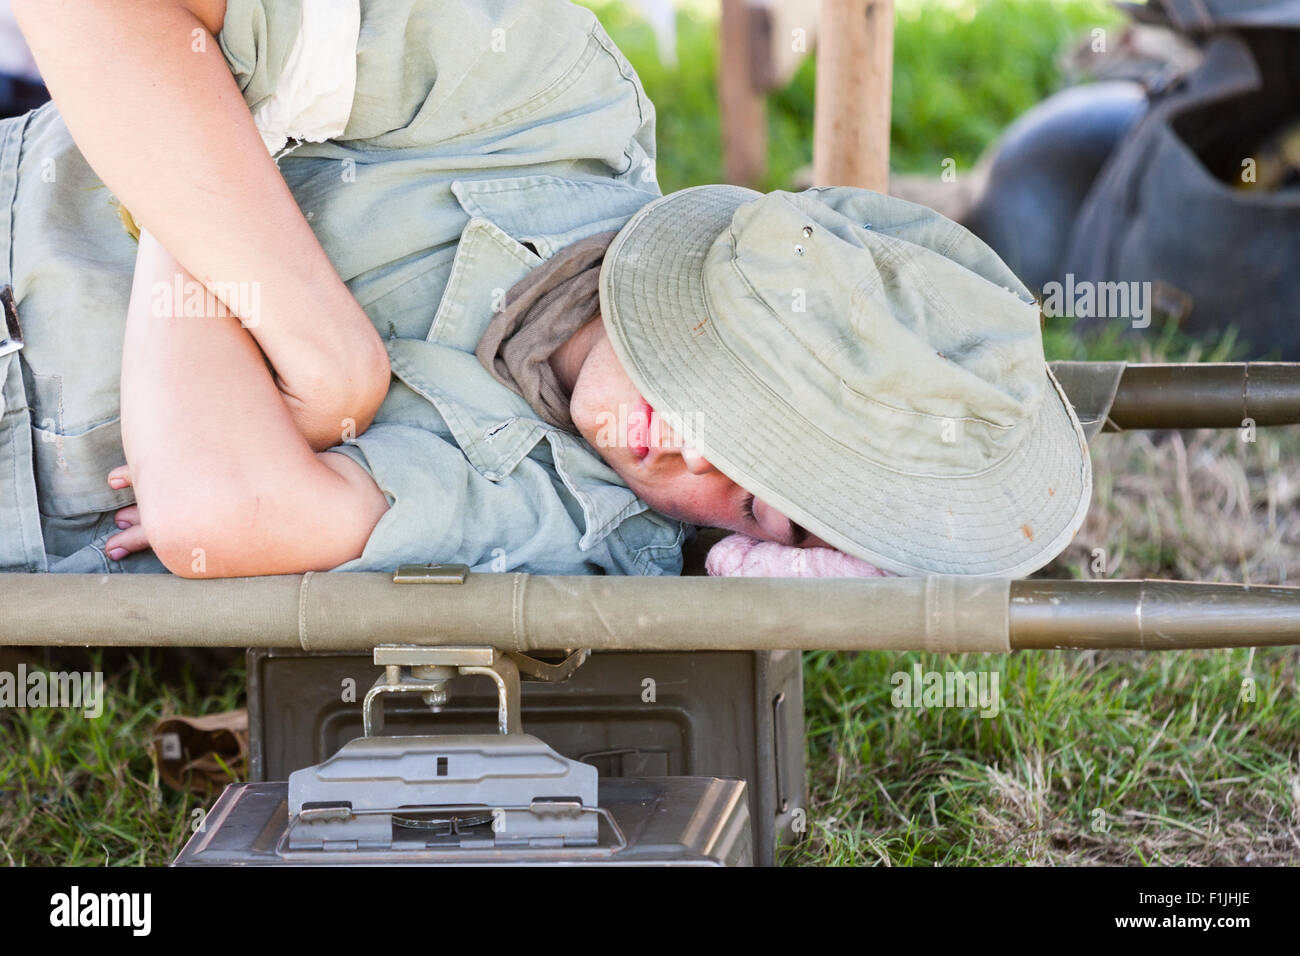 England, war and peace show. Vietnam re-enactment. Australian soldier sleeping on stretcher with hat pulled over - Stock Image